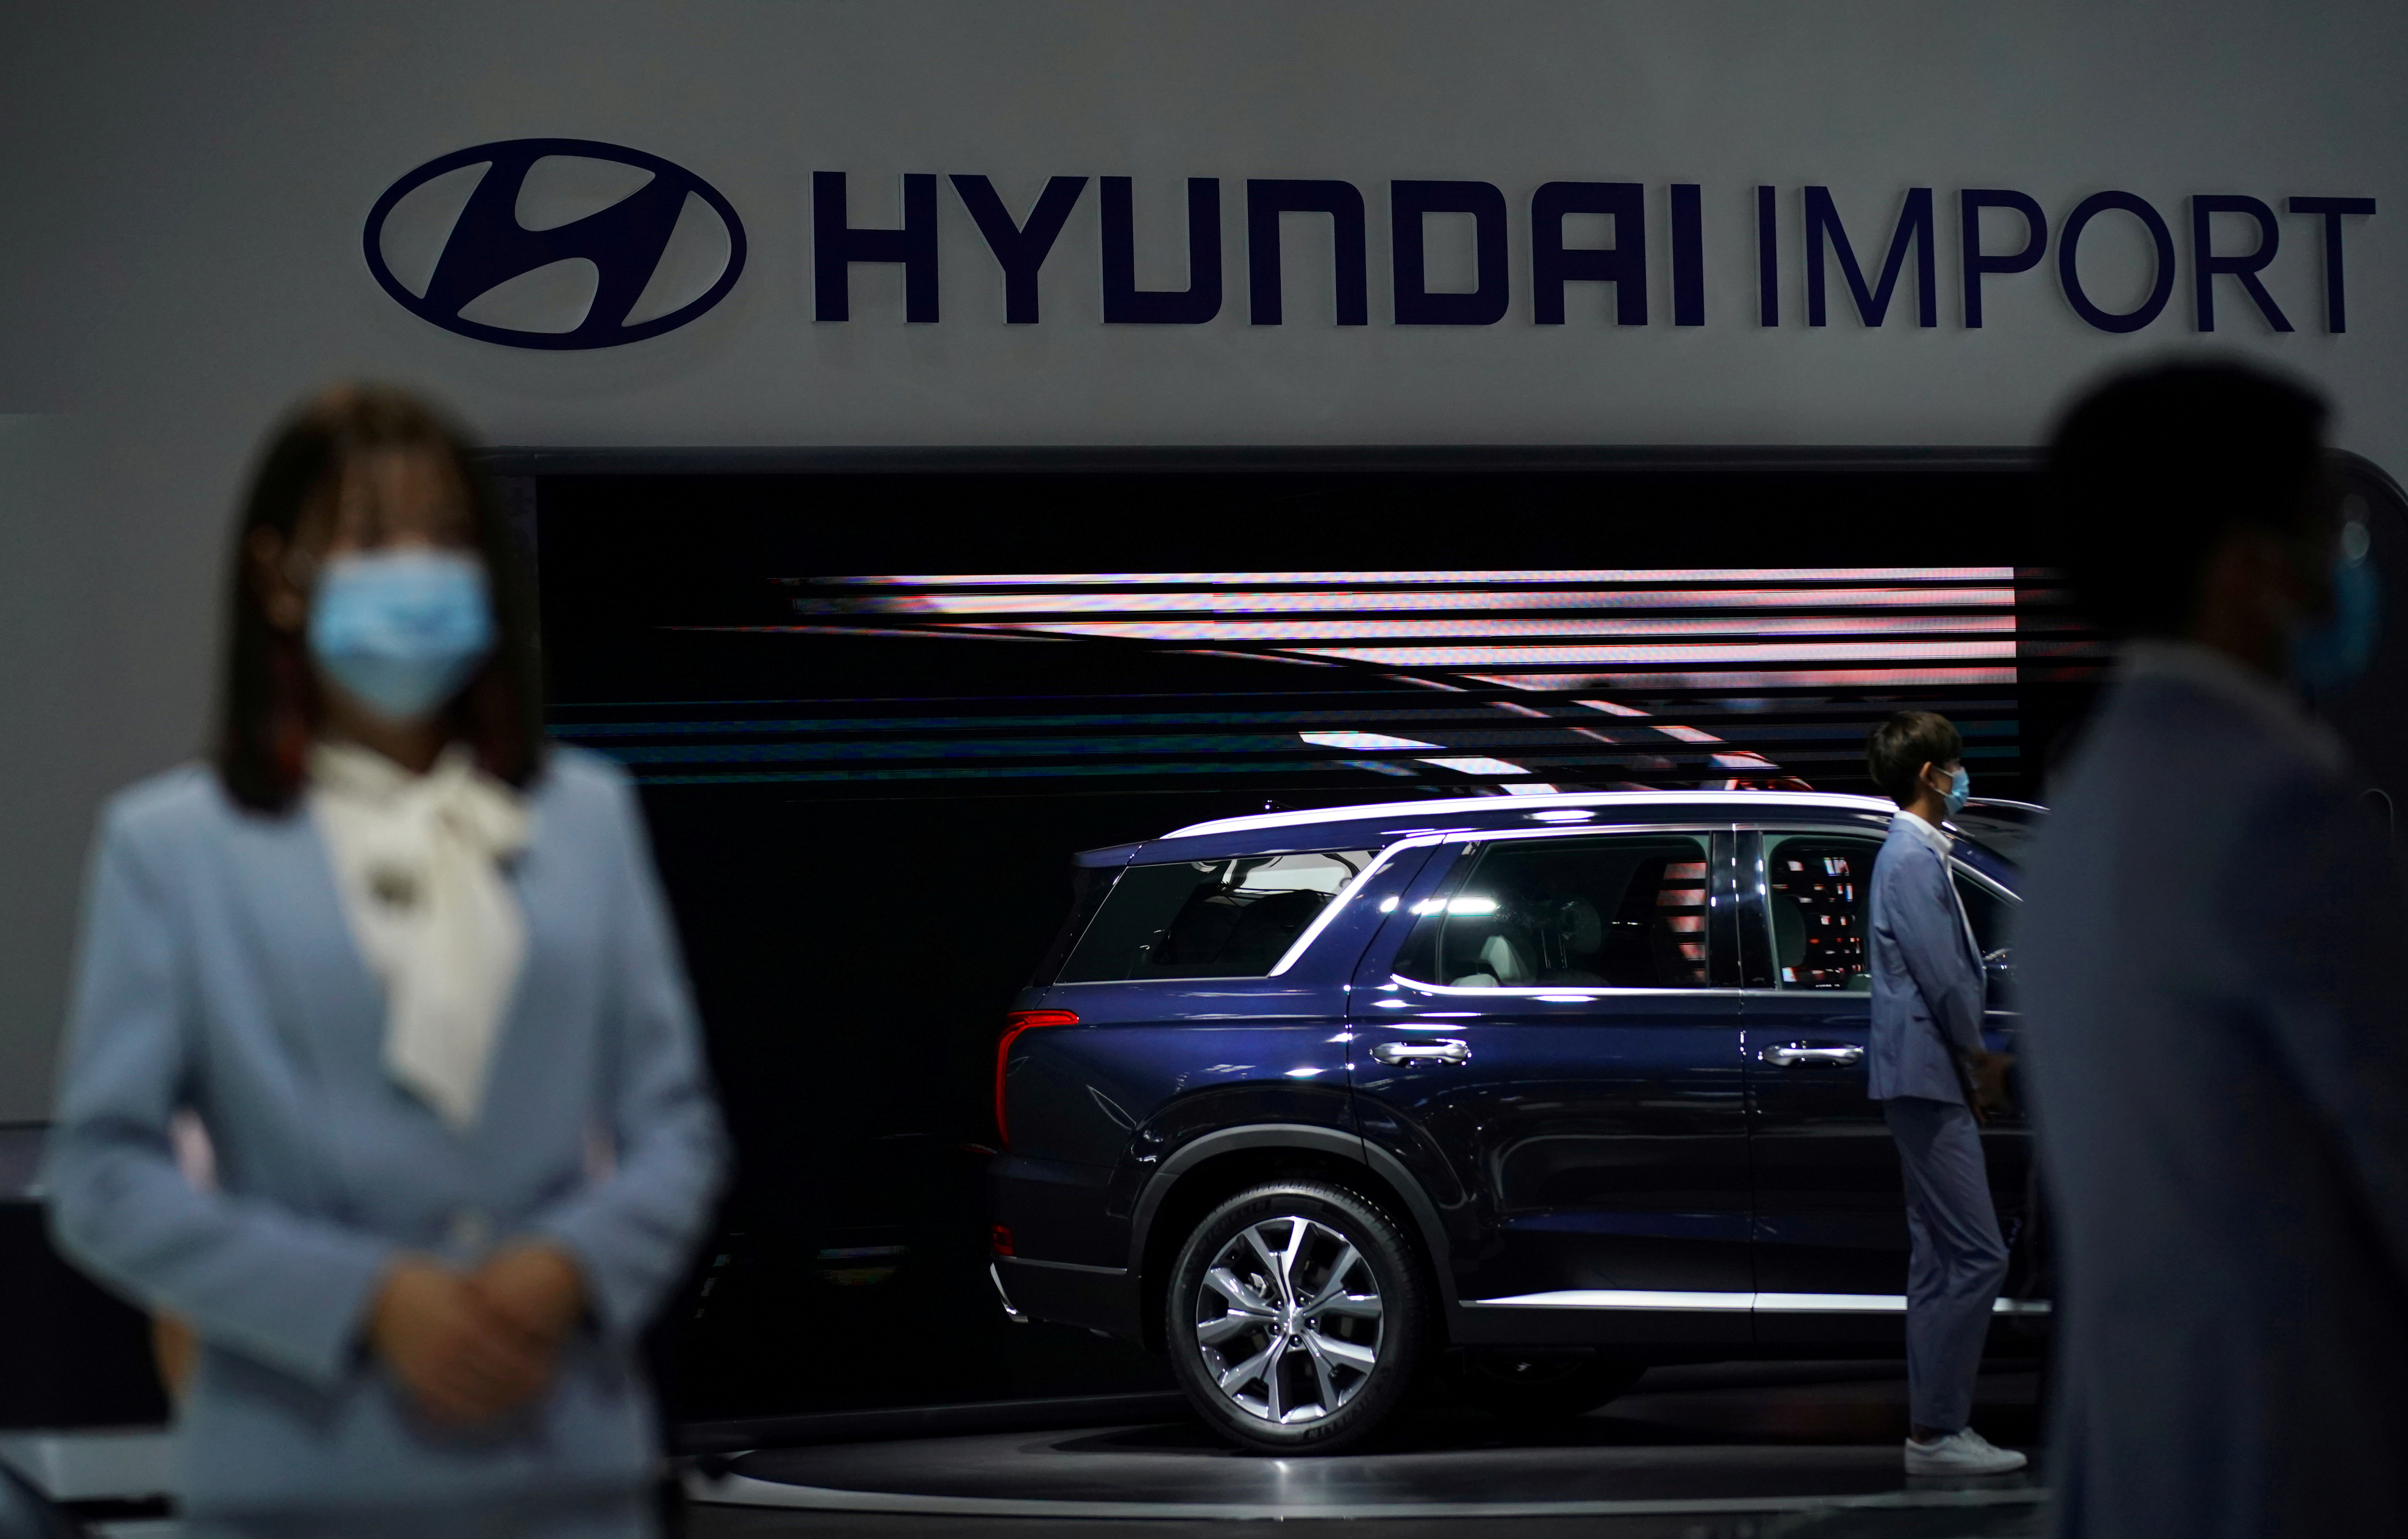 Staff members wearing face masks are seen at a Hyundai booth at the Beijing International Automotive Exhibition, or Auto China show, in Beijing, China September 27, 2020. REUTERS/Tingshu Wang/File Photo